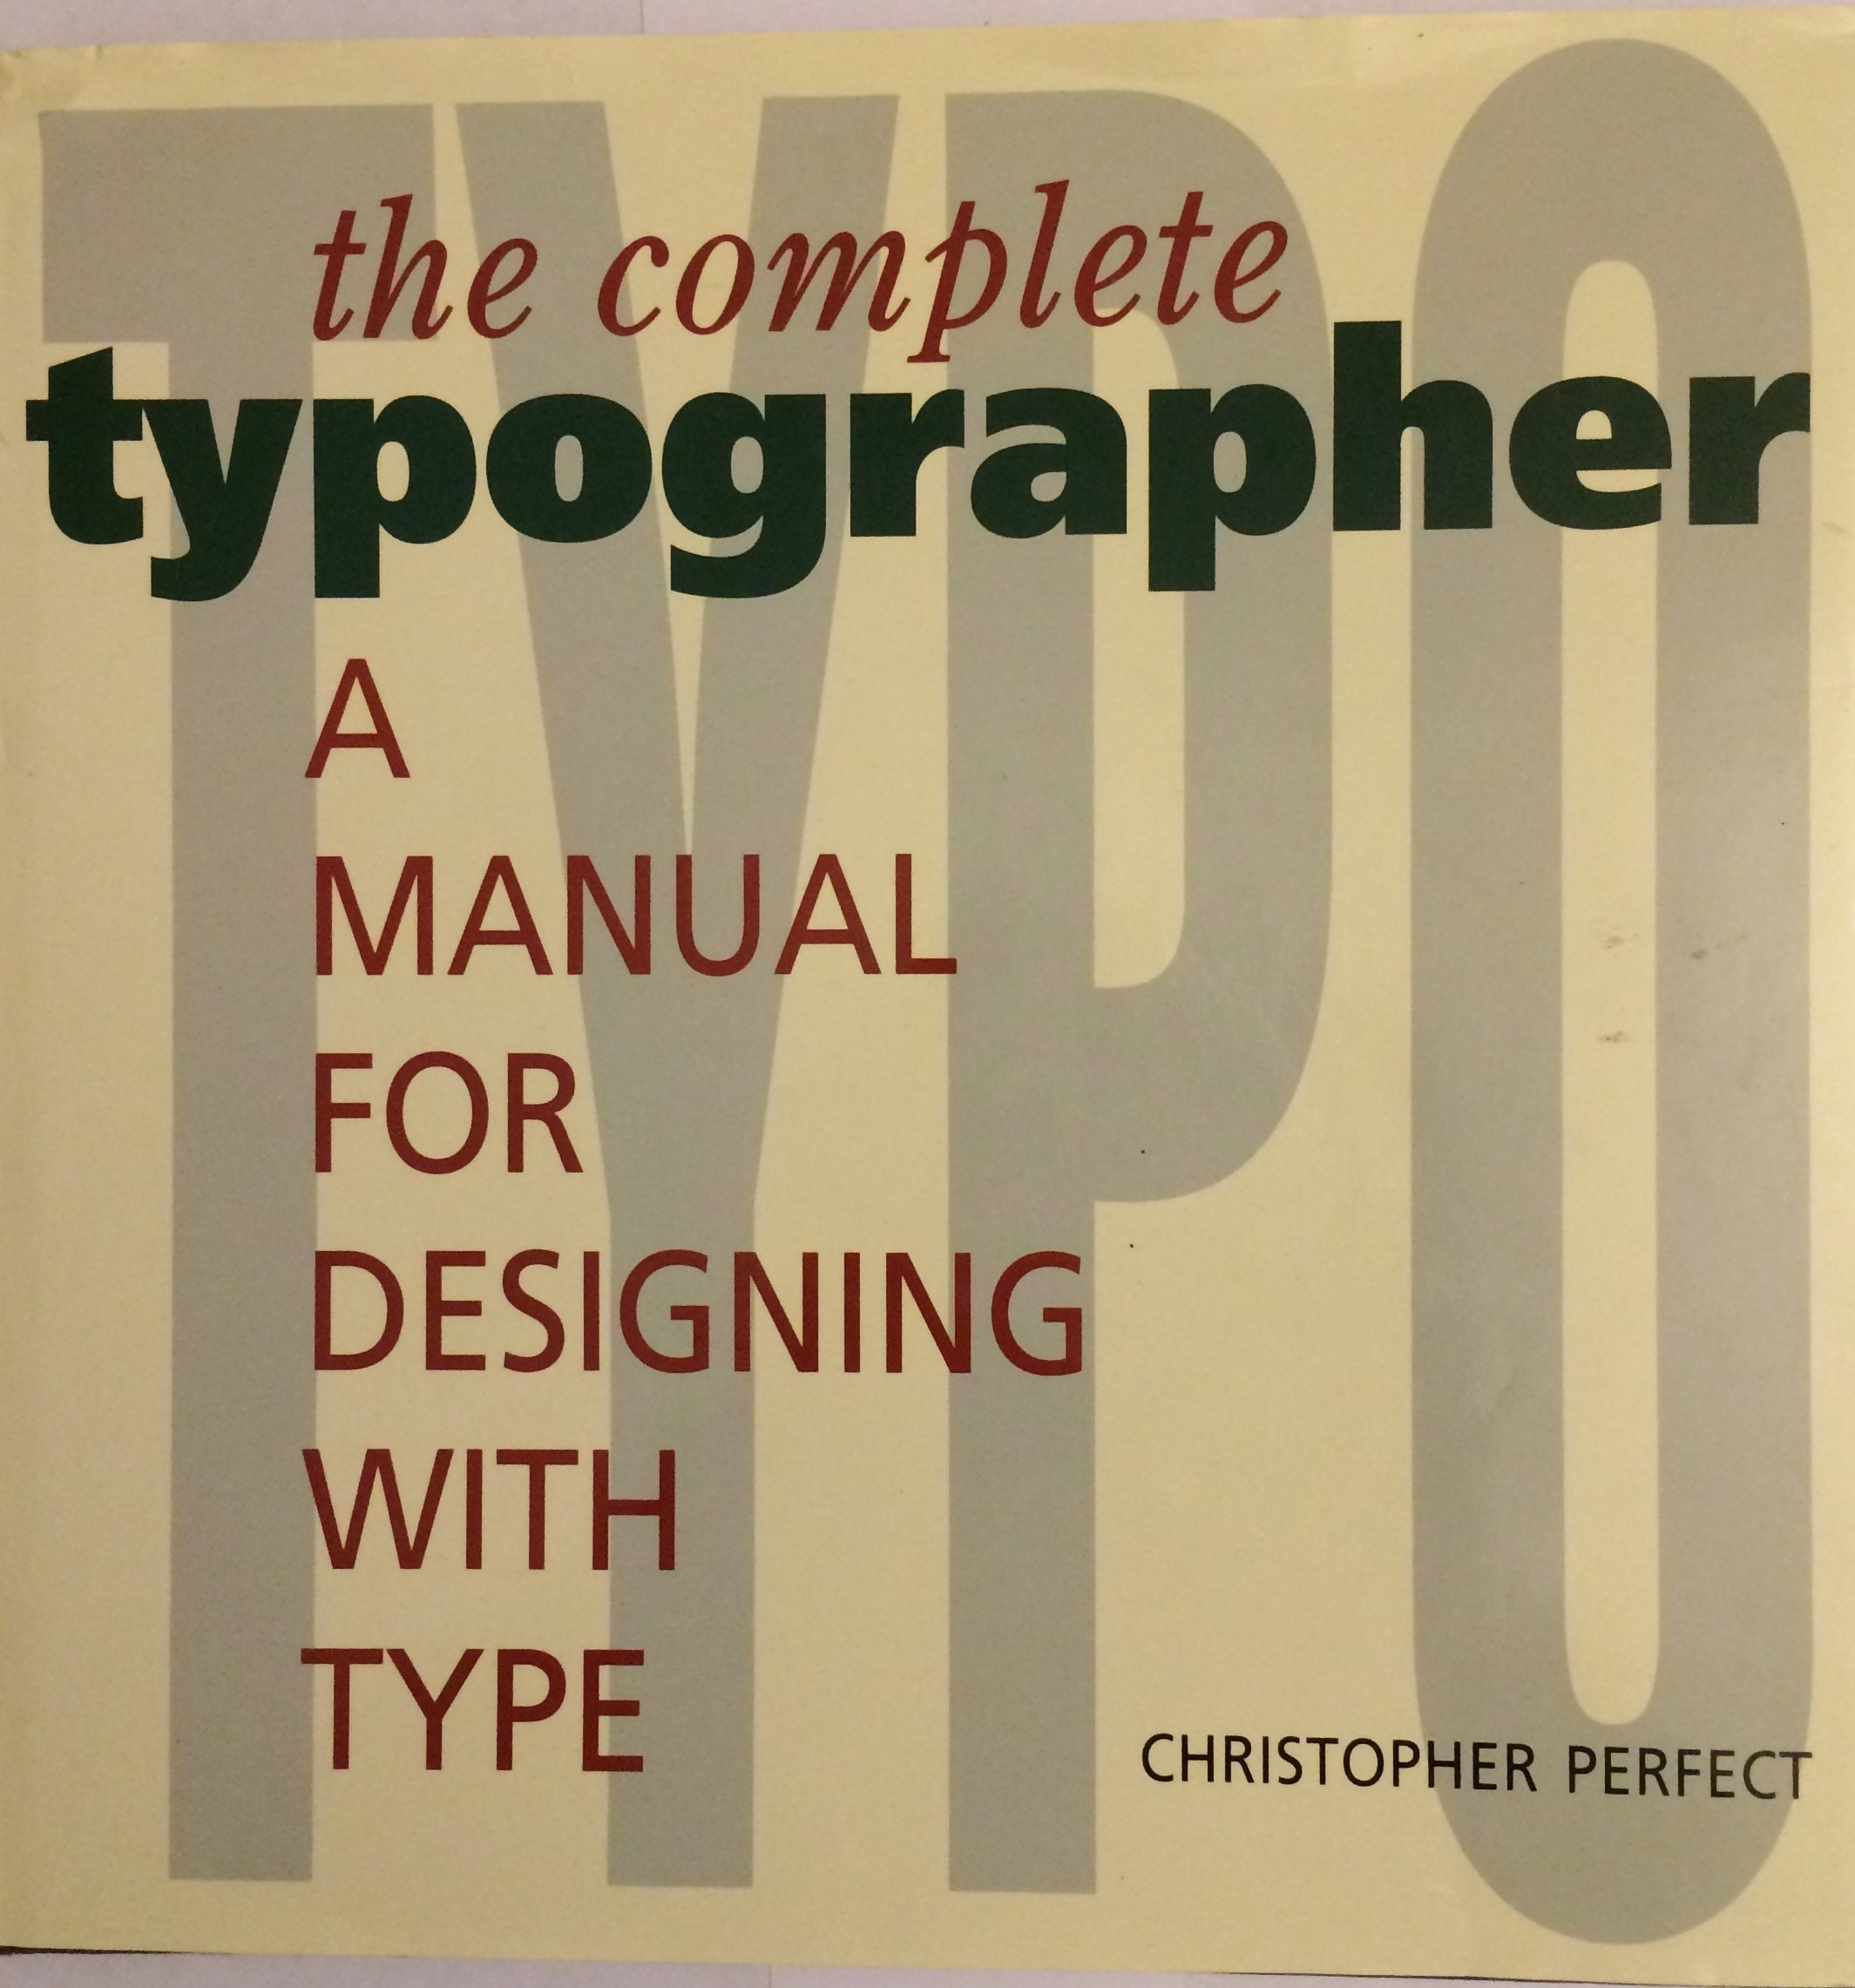 complete typographer: a manual for designing with type